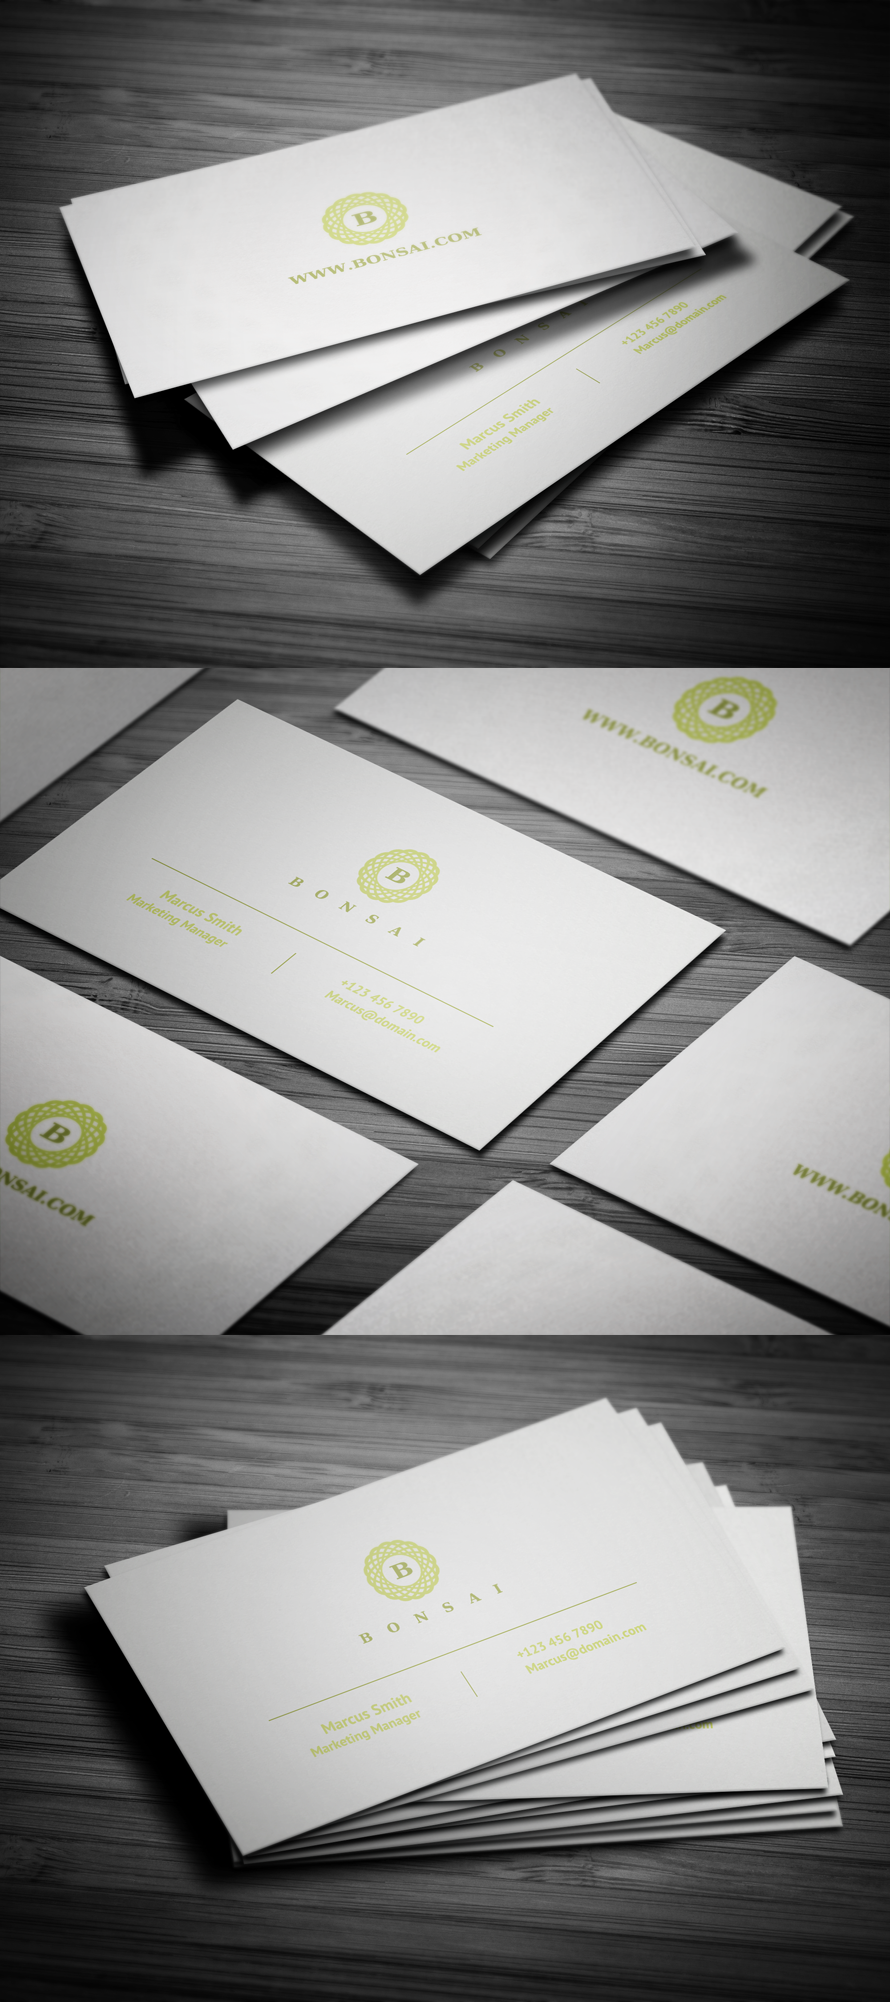 Clean and simple business cards templates available for free clean and simple business cards templates available for free download in psd format with features 35 x 2 inches dimensions 300 dpi high resolution friedricerecipe Gallery